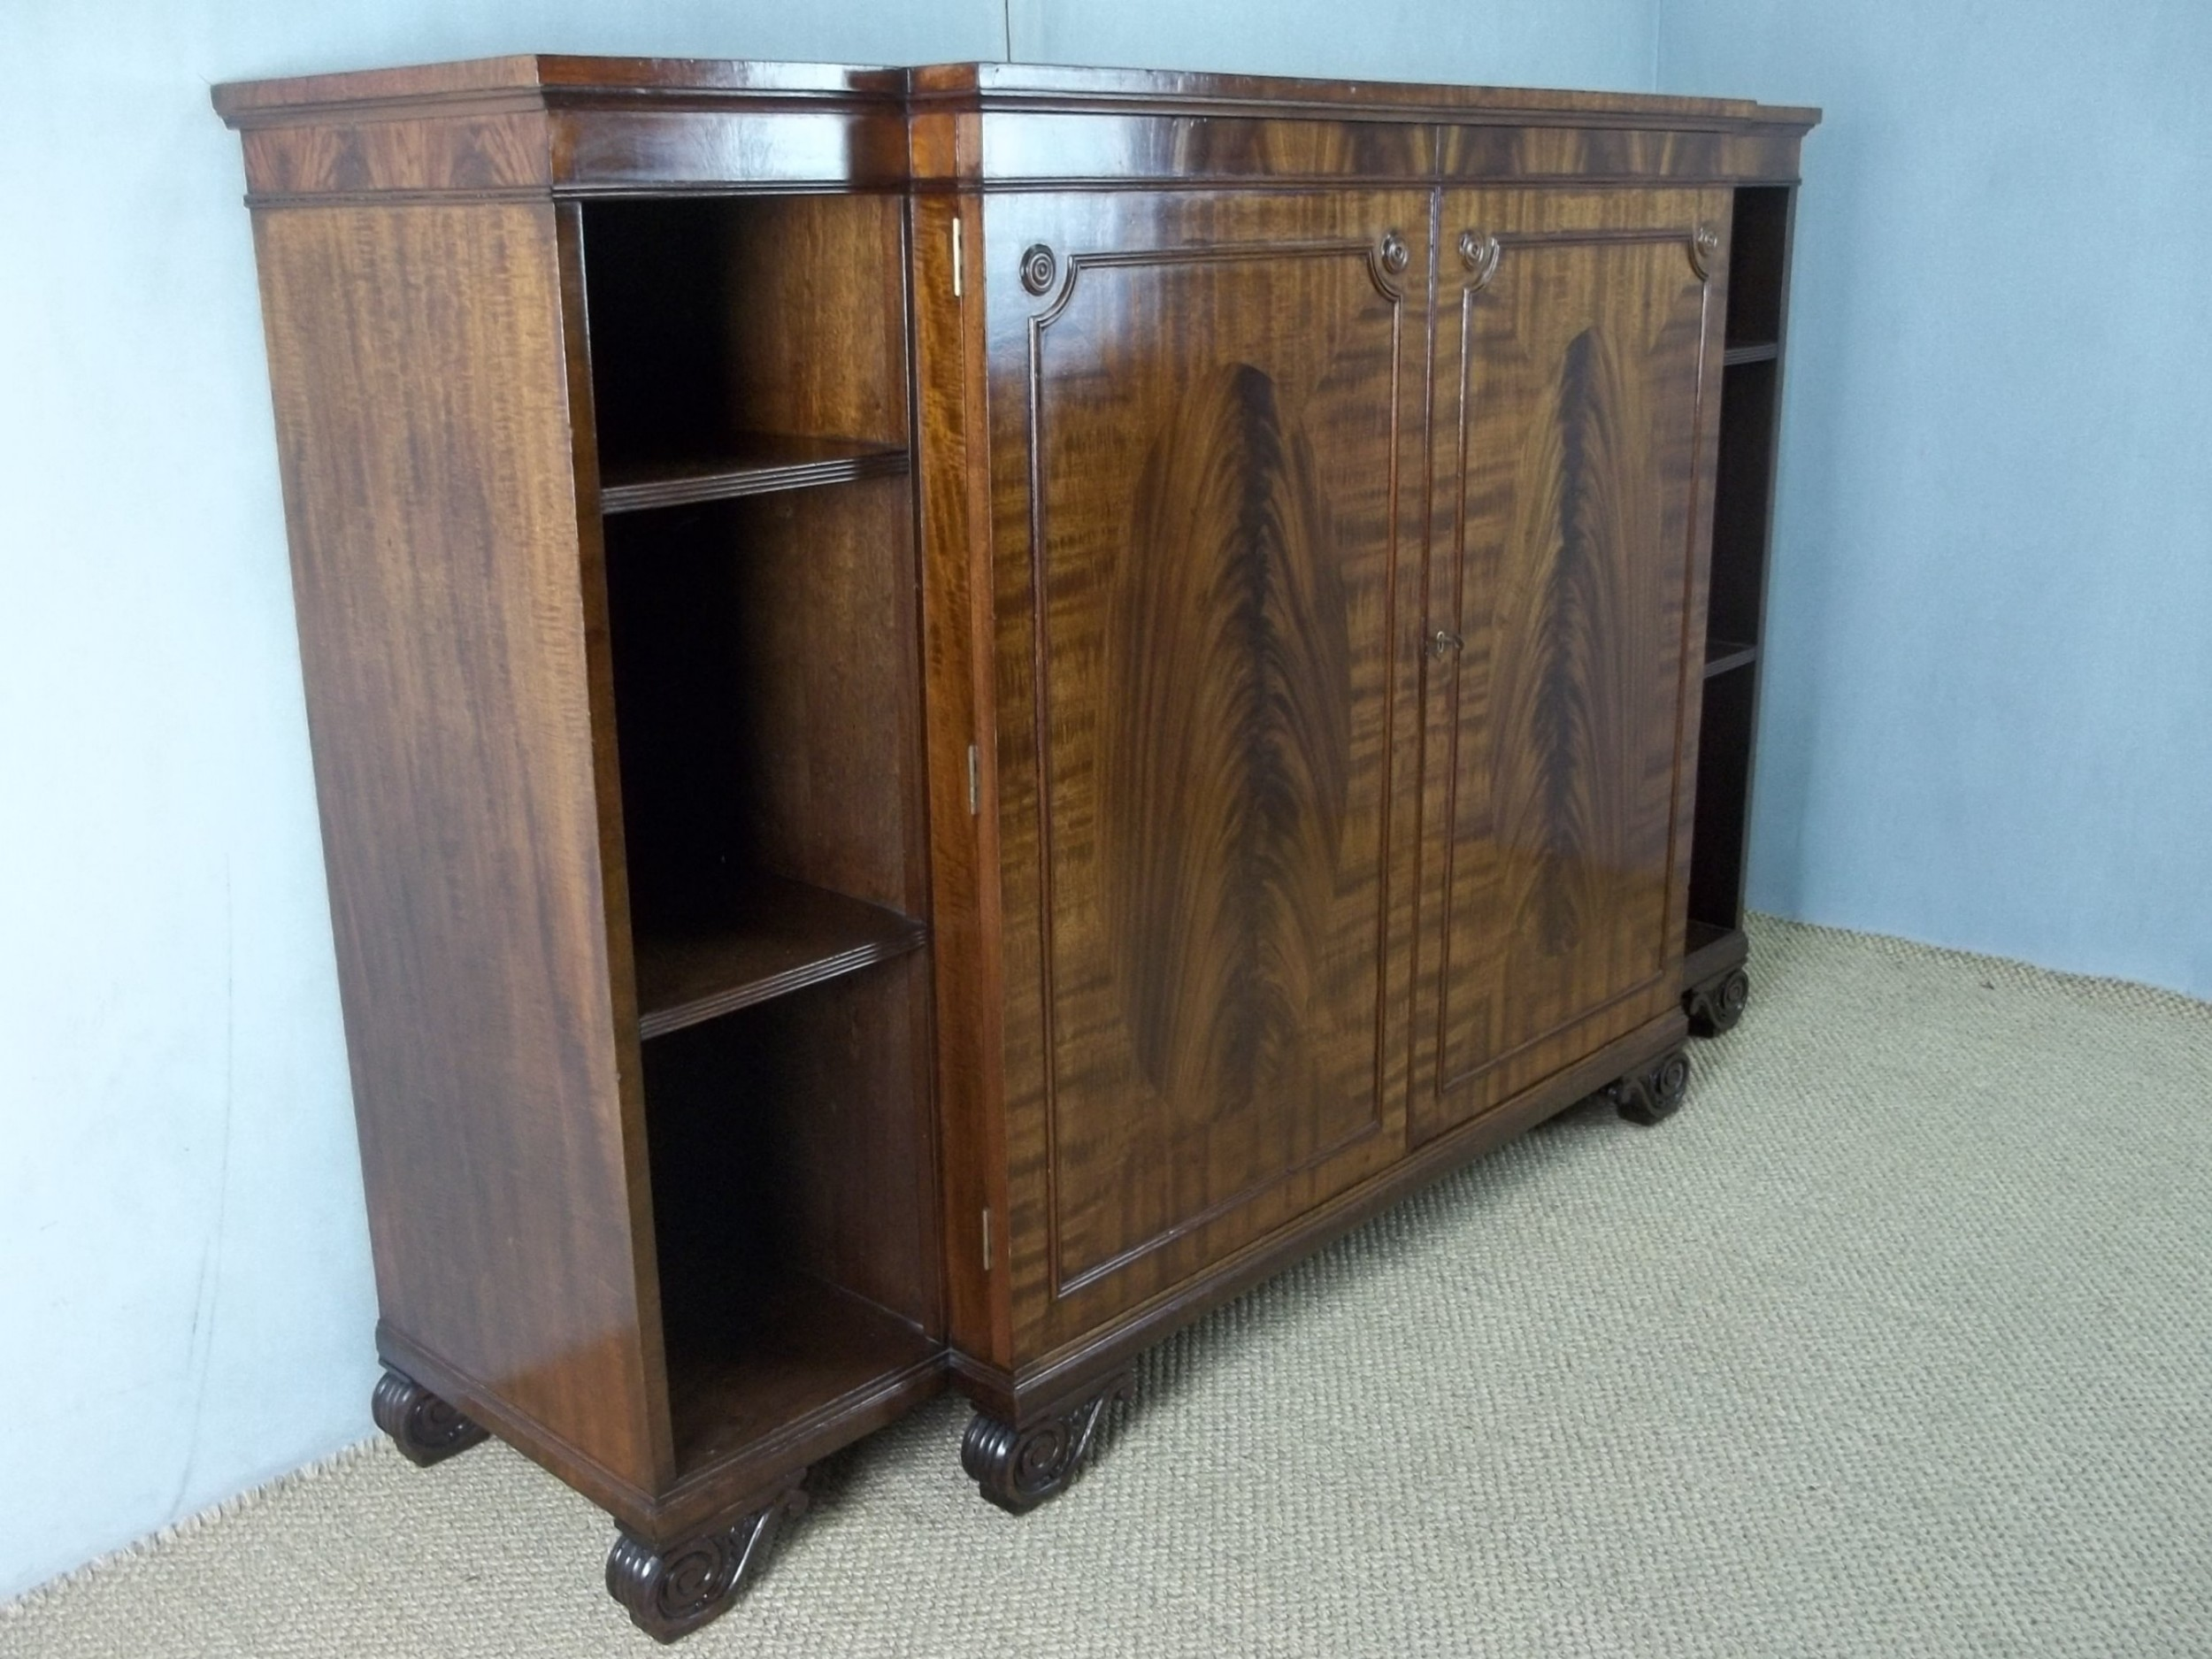 antique mahogany open breakfront bookcase chiffonier sideboard credenza of regency hepplewhite design c1910